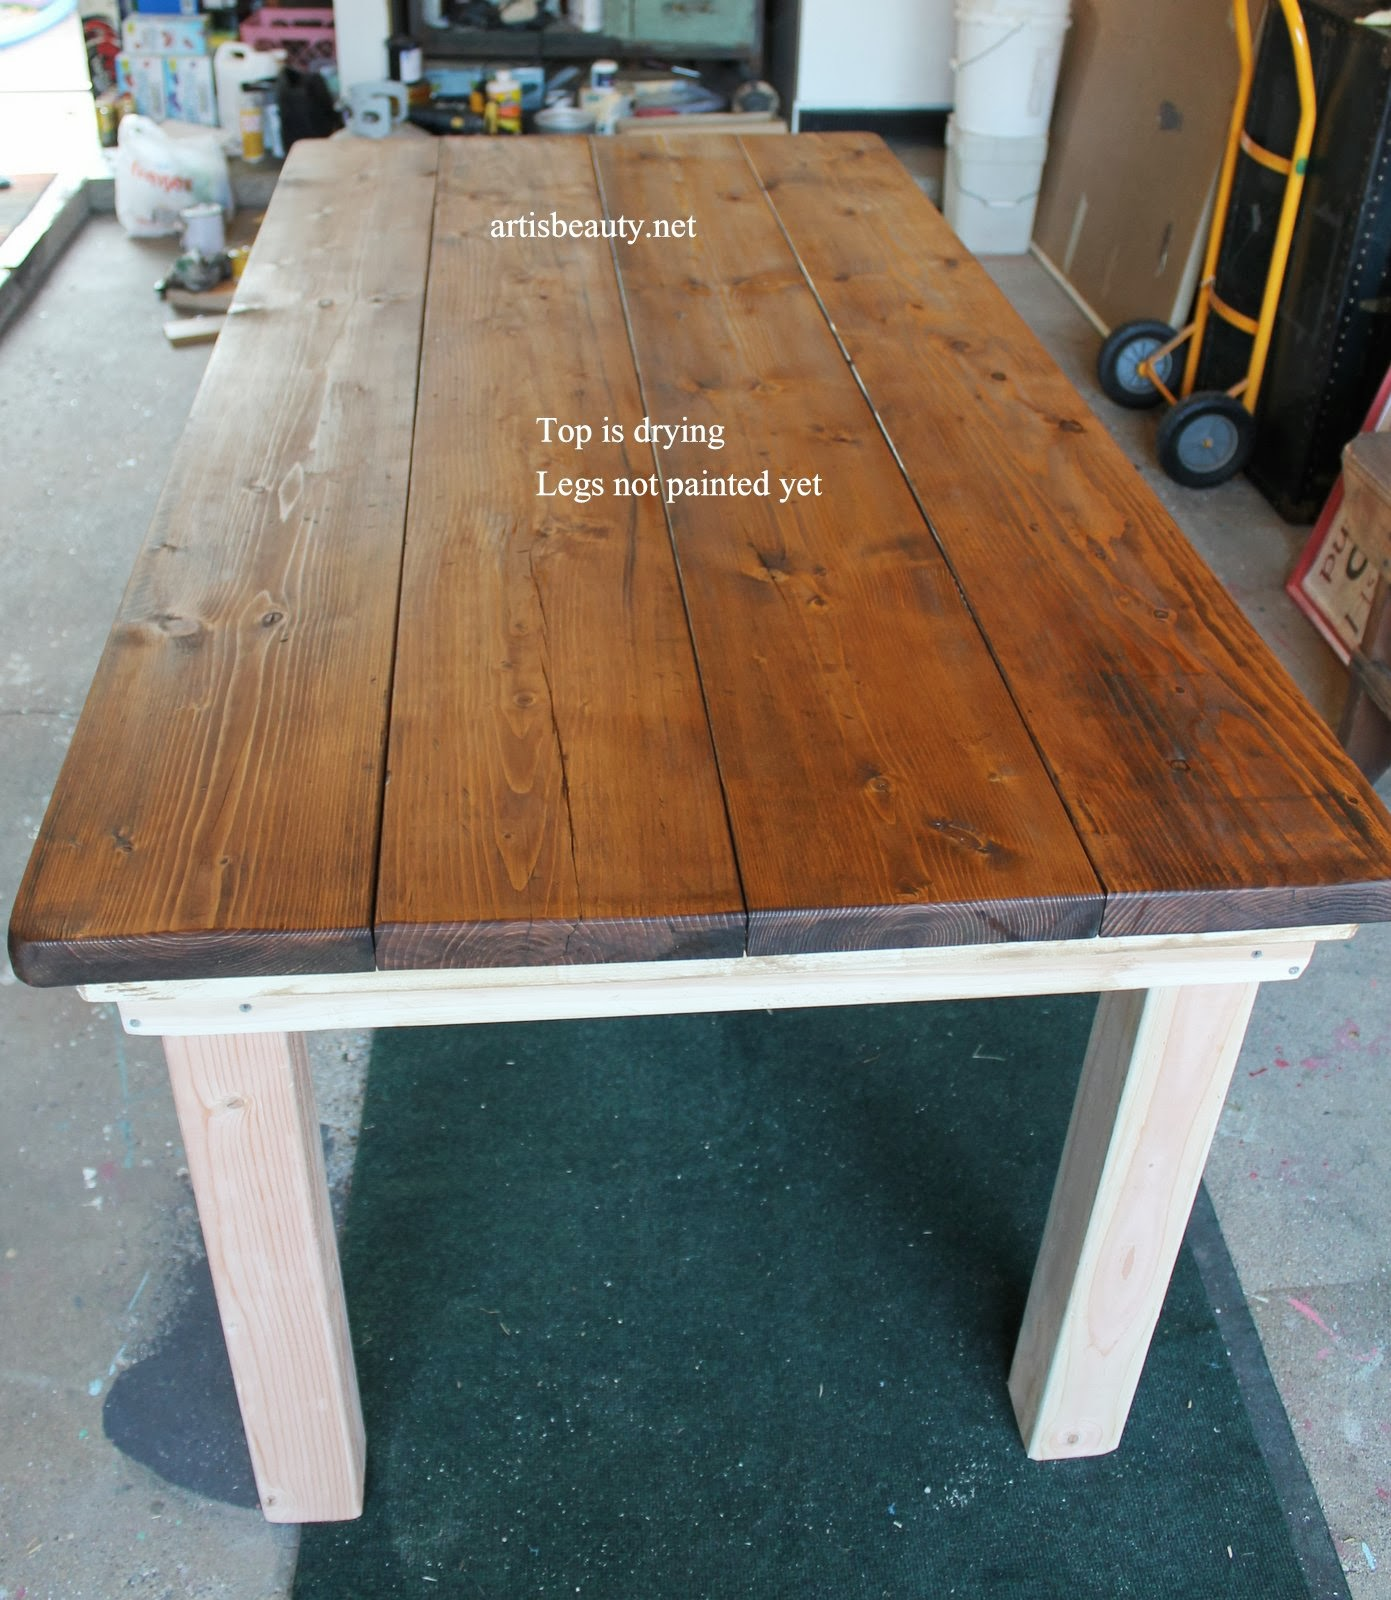 Farmhouse Kitchen Table Square remodelaholic | build a farmhouse table for under $100